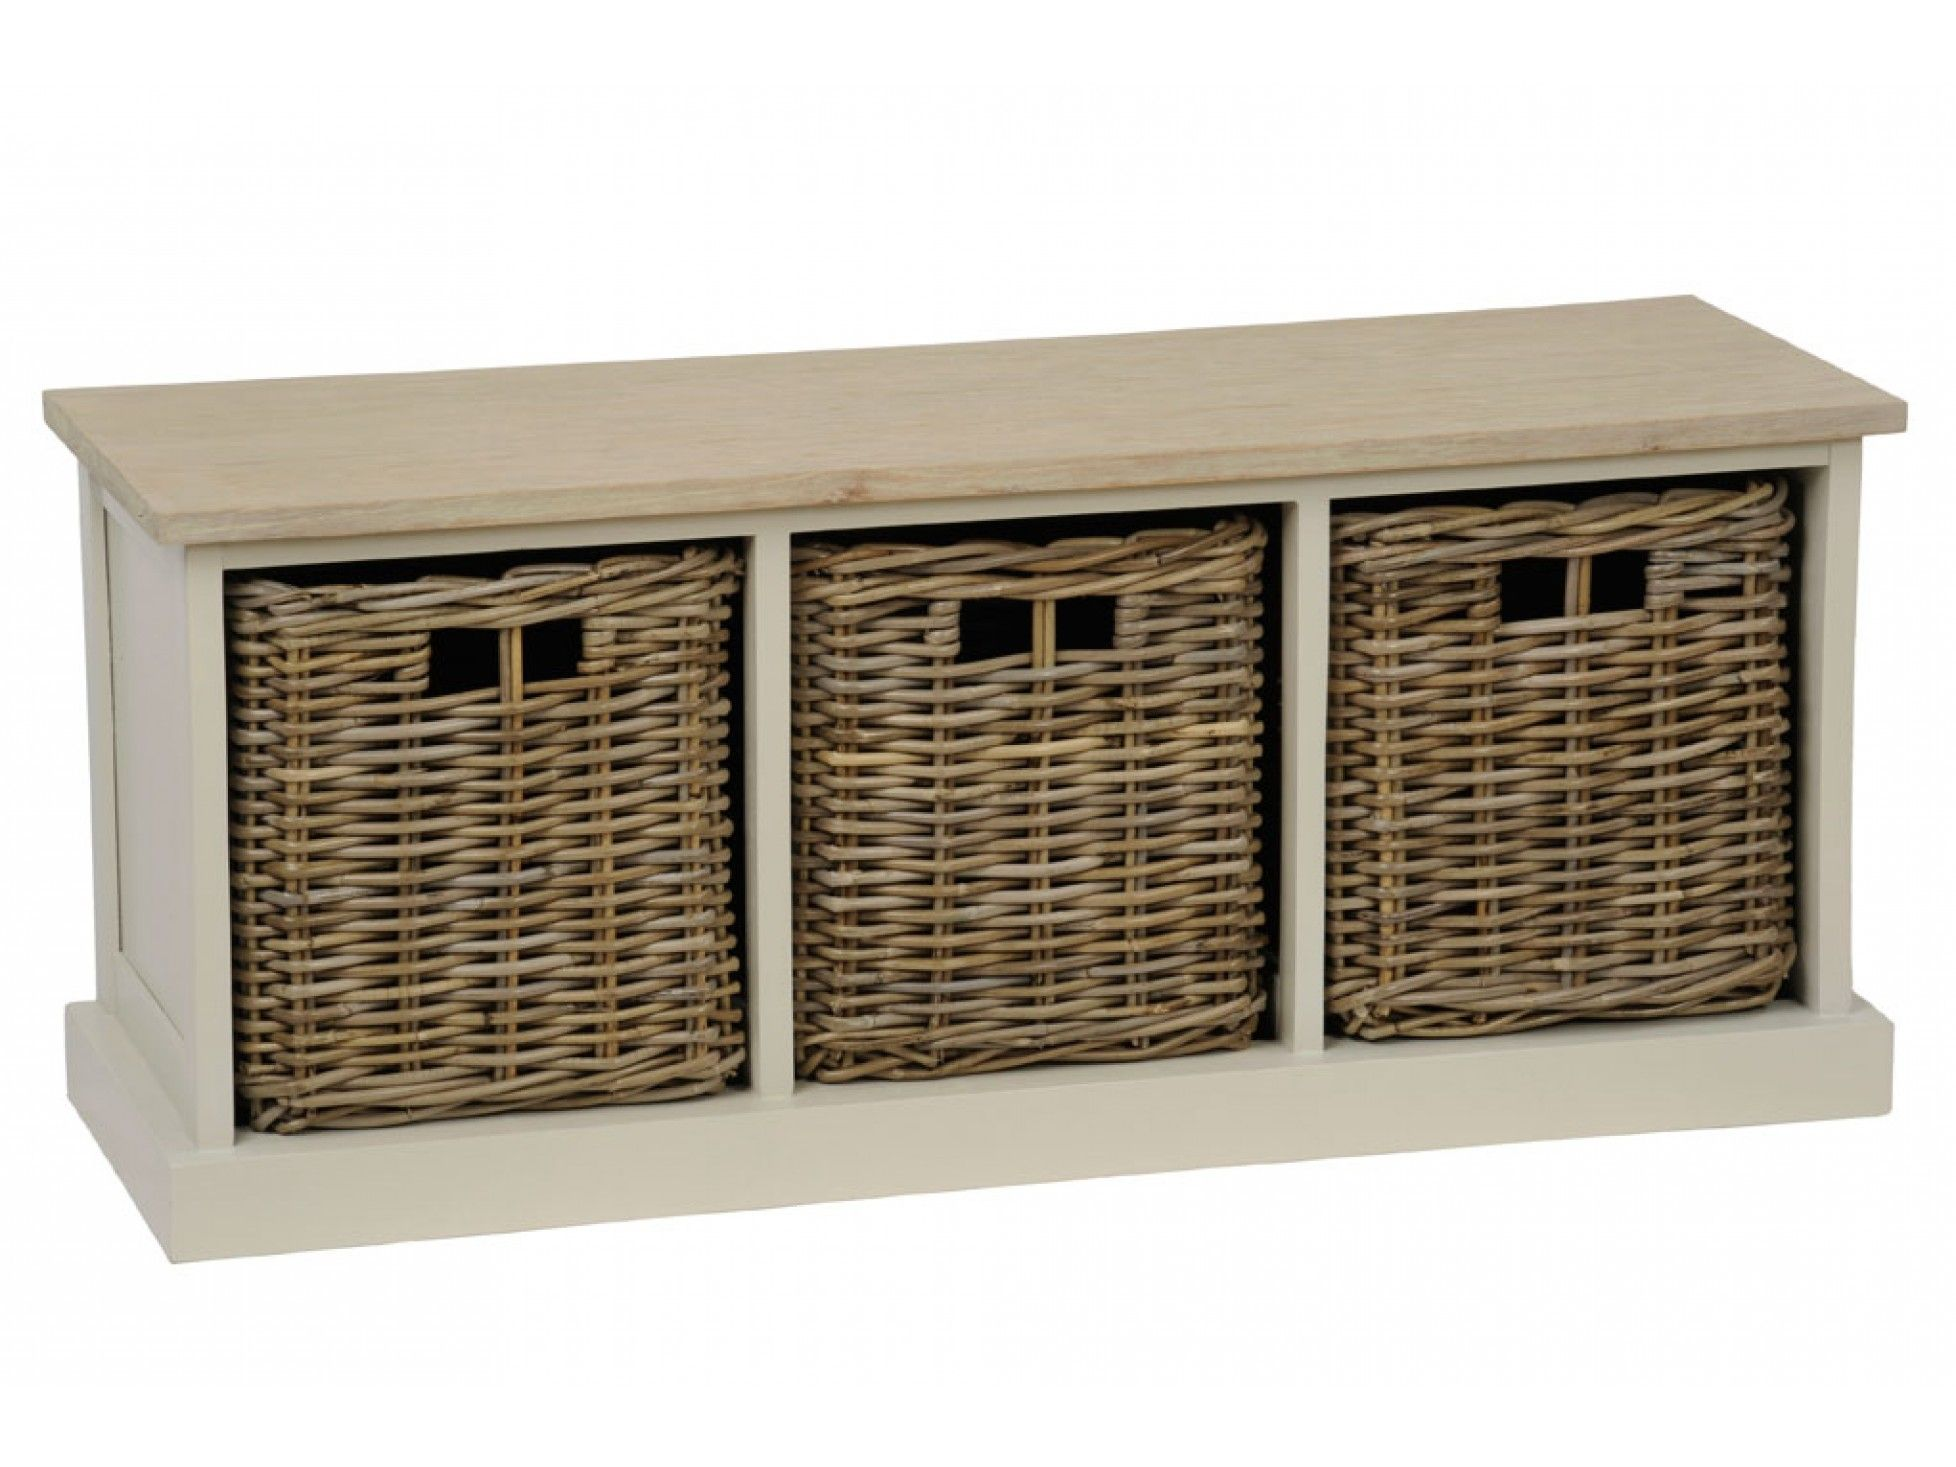 Wooden Southwold Bench Storage Basket Unit